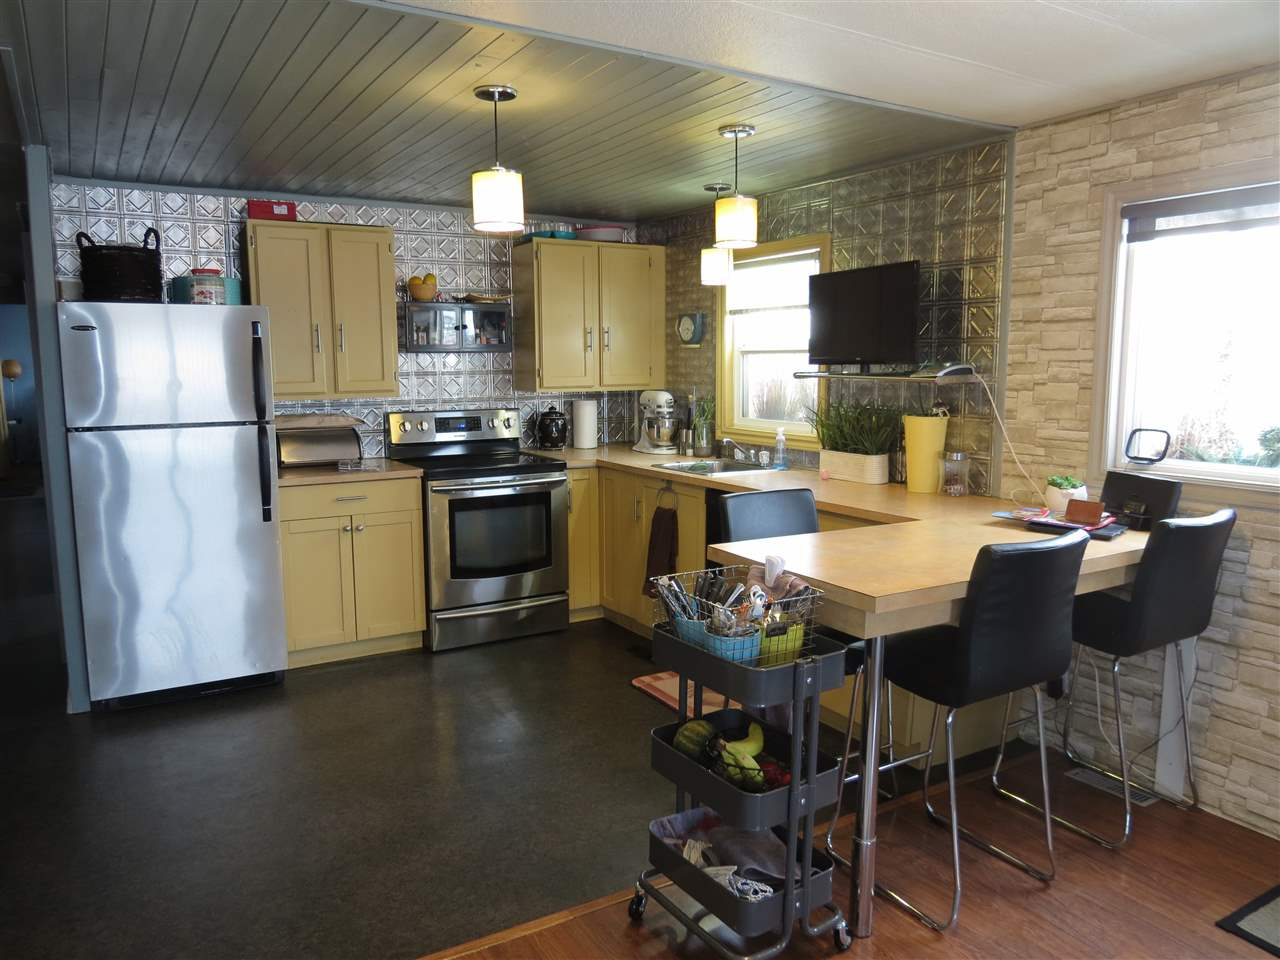 Photo 10: 55231 RR 261: Rural Sturgeon County Manufactured Home for sale : MLS® # E4051426